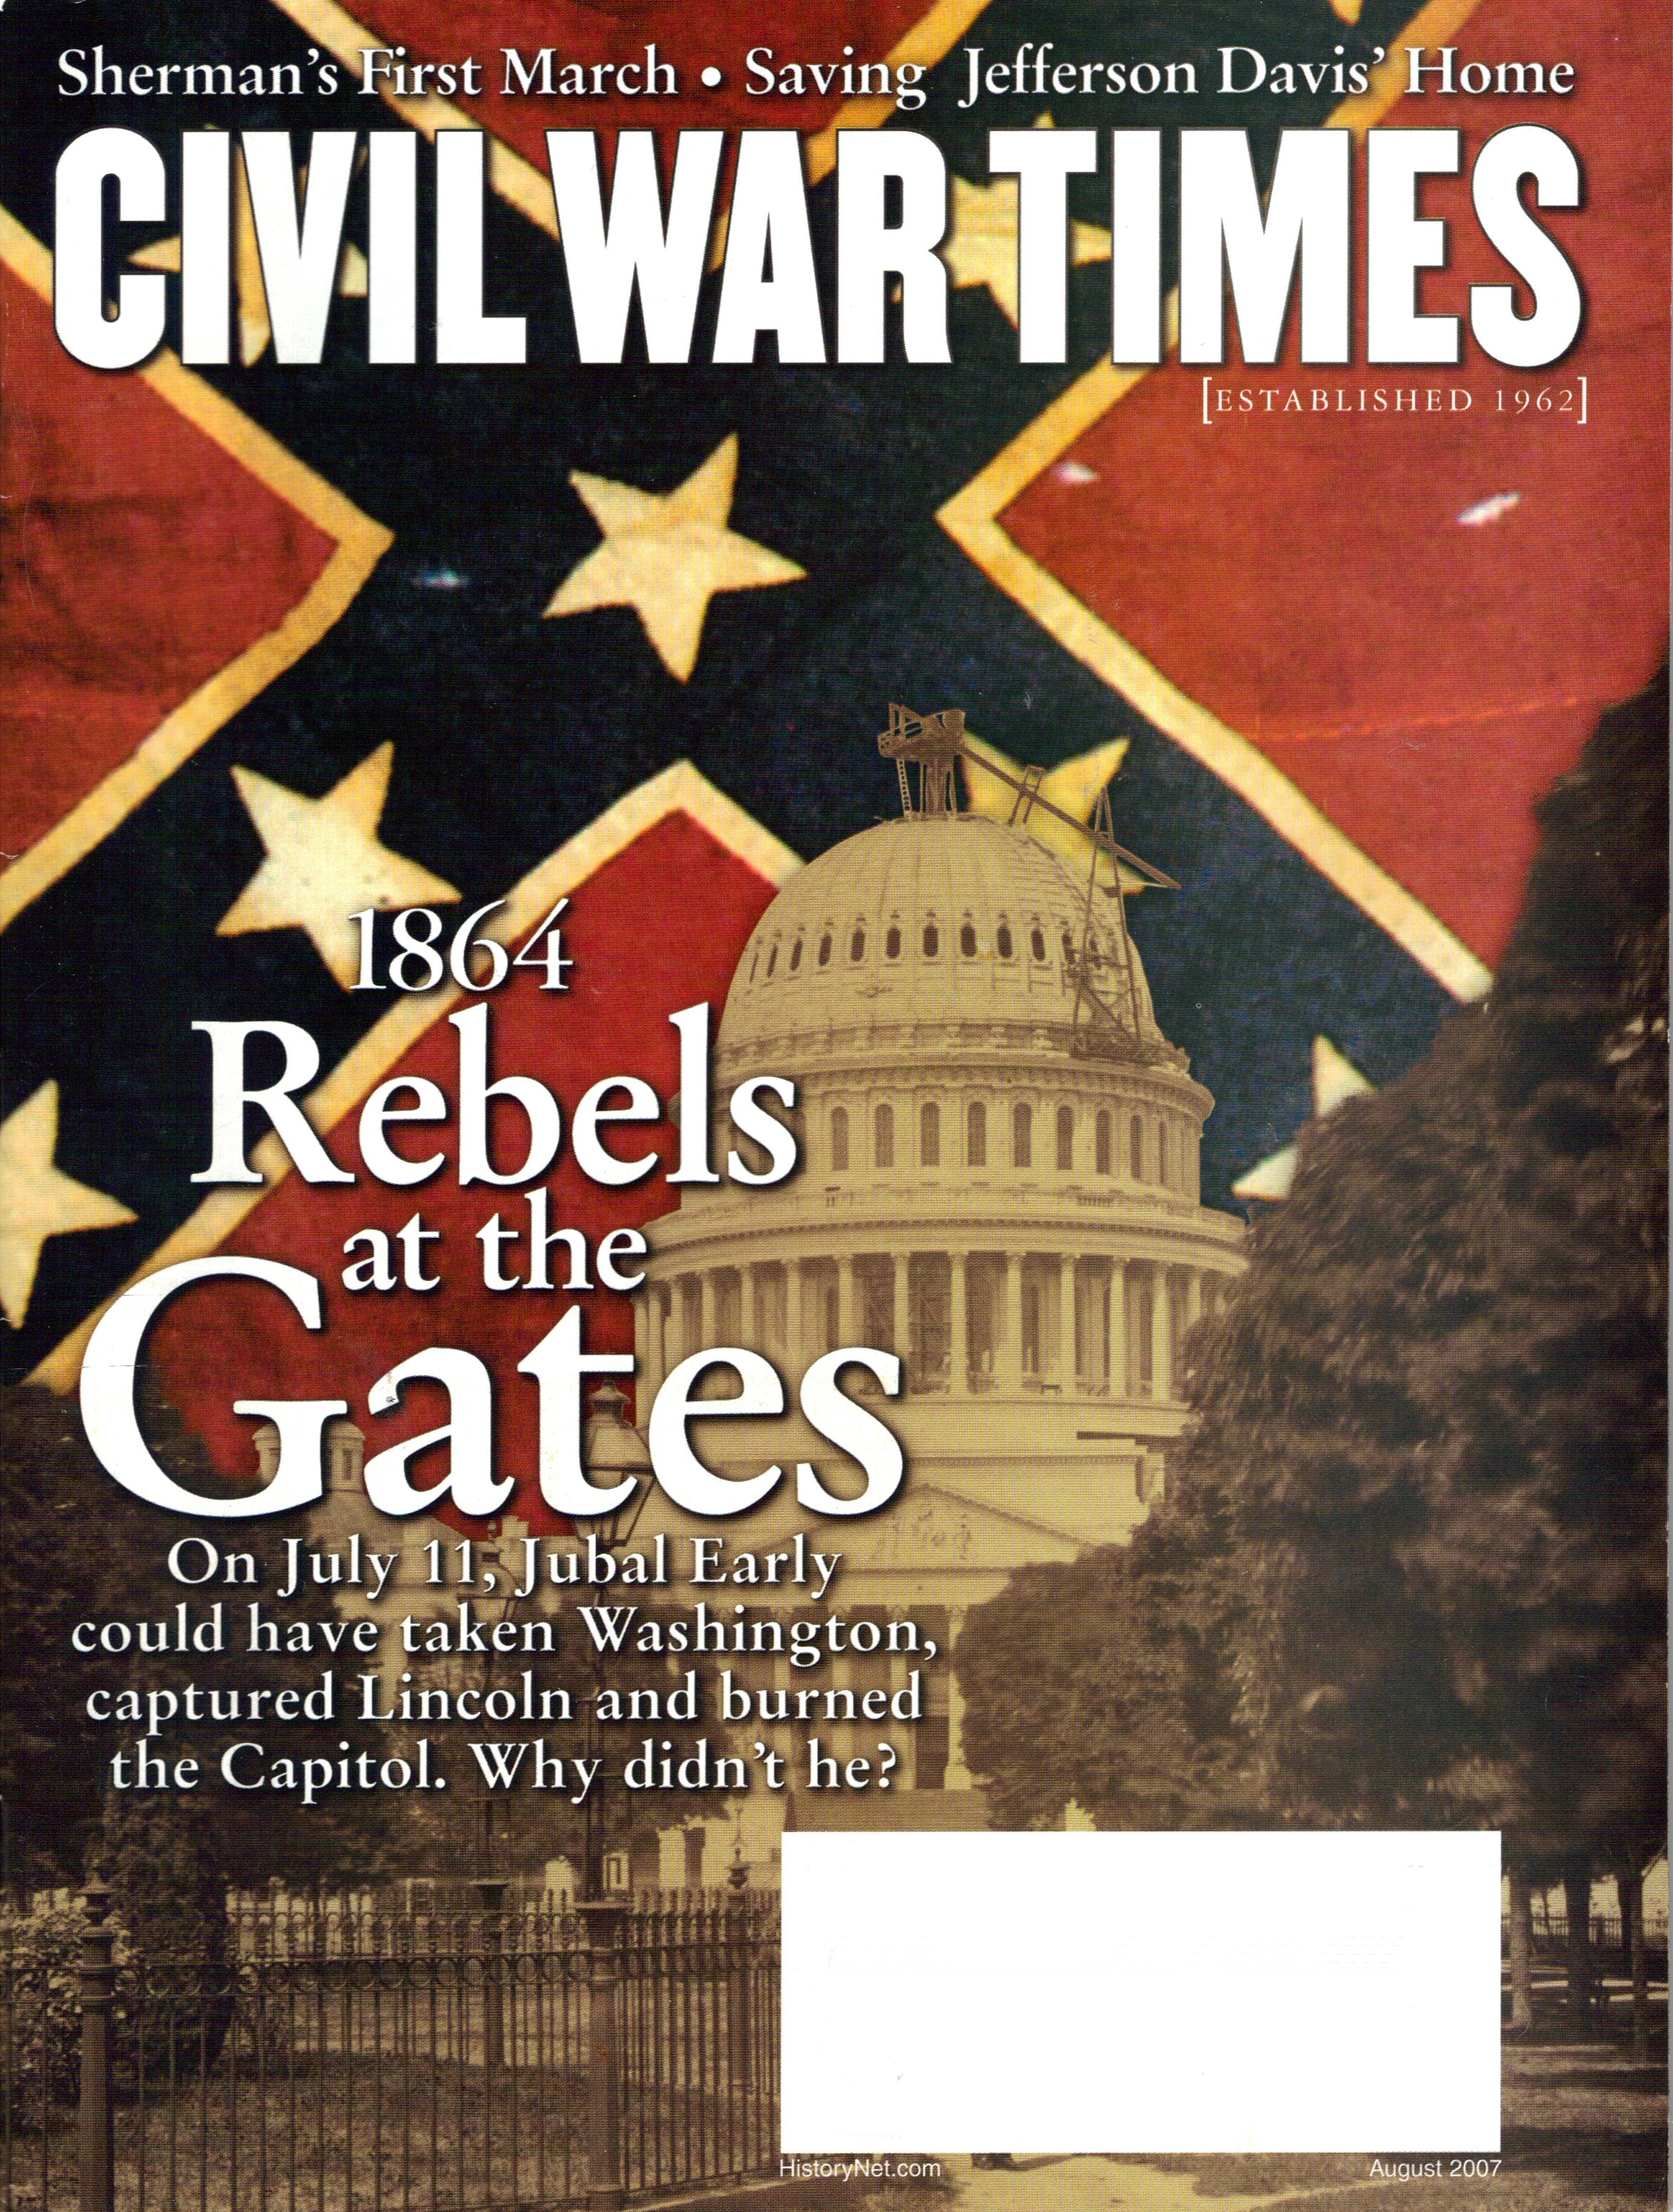 Civil War Times, Volume 46, Number 6 (August 2007)